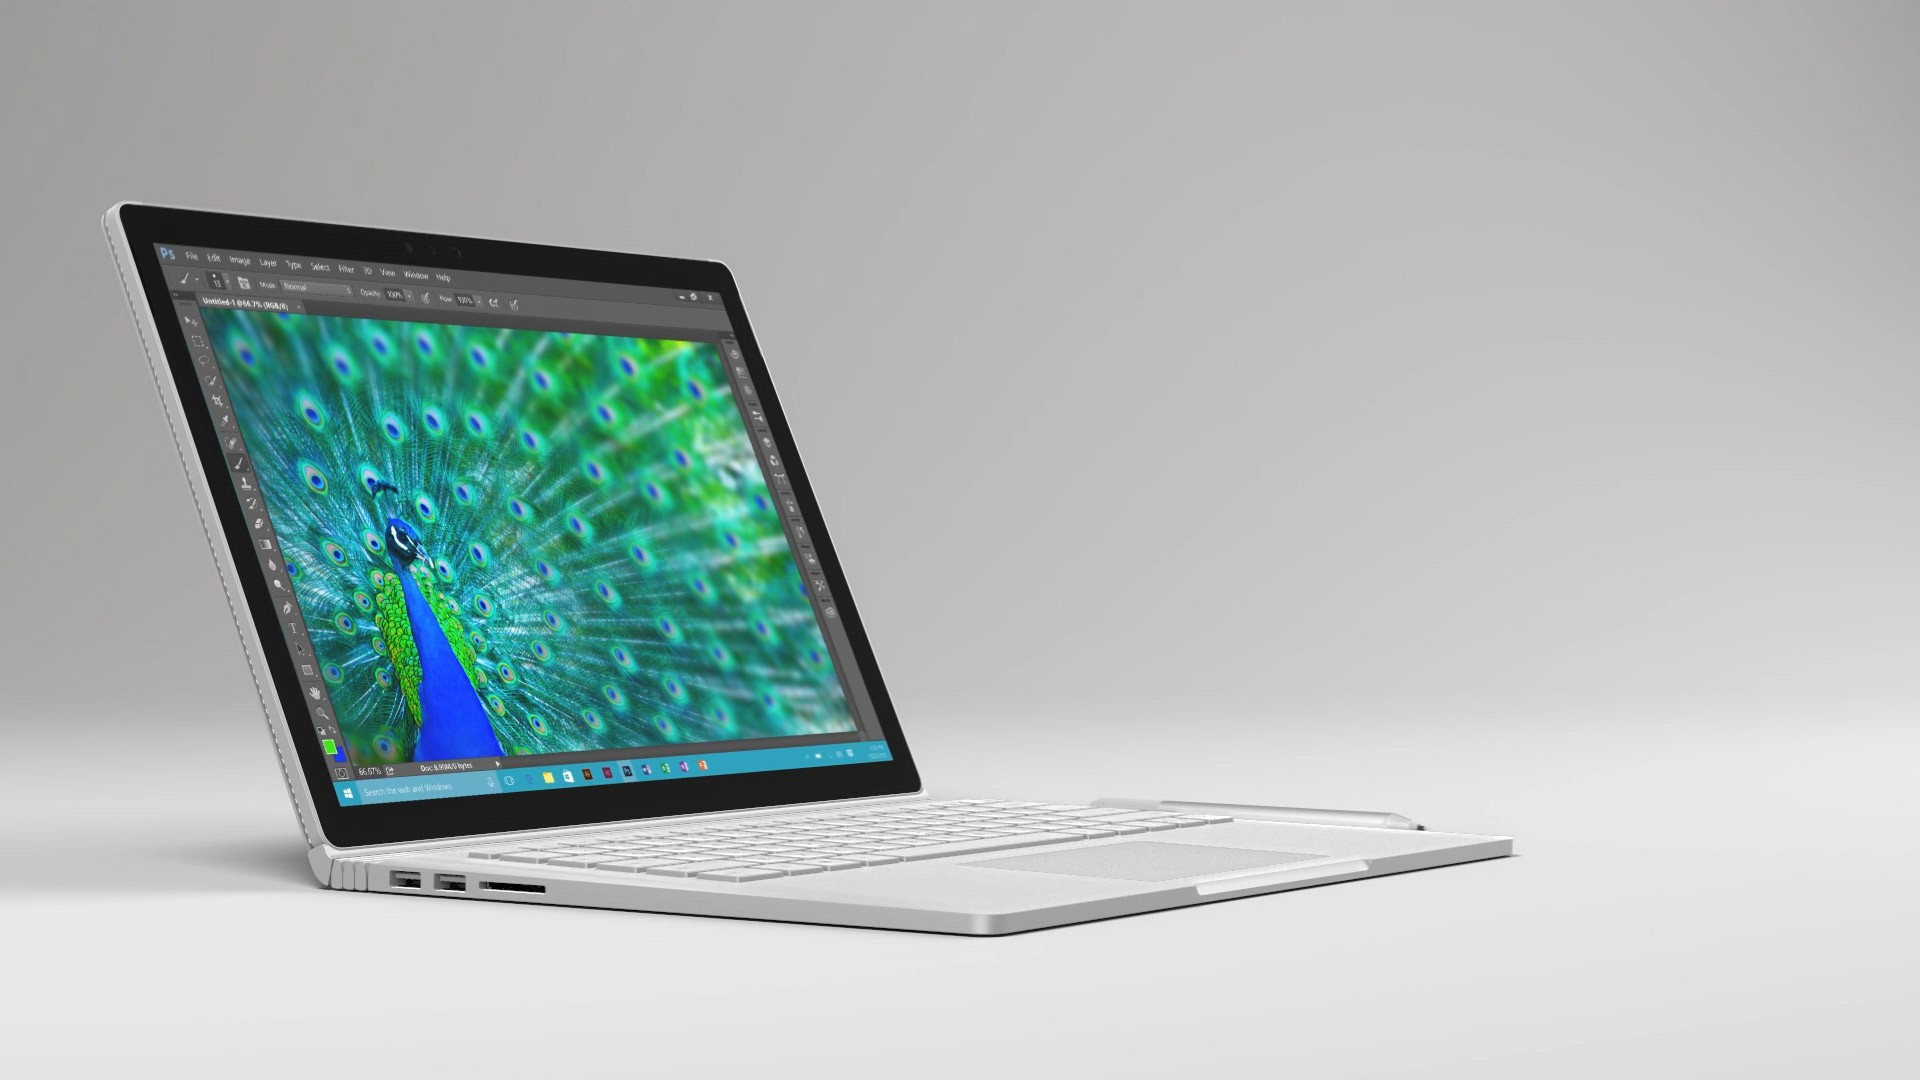 Microsoft Releases May 2016 Firmware Update for Surface Book